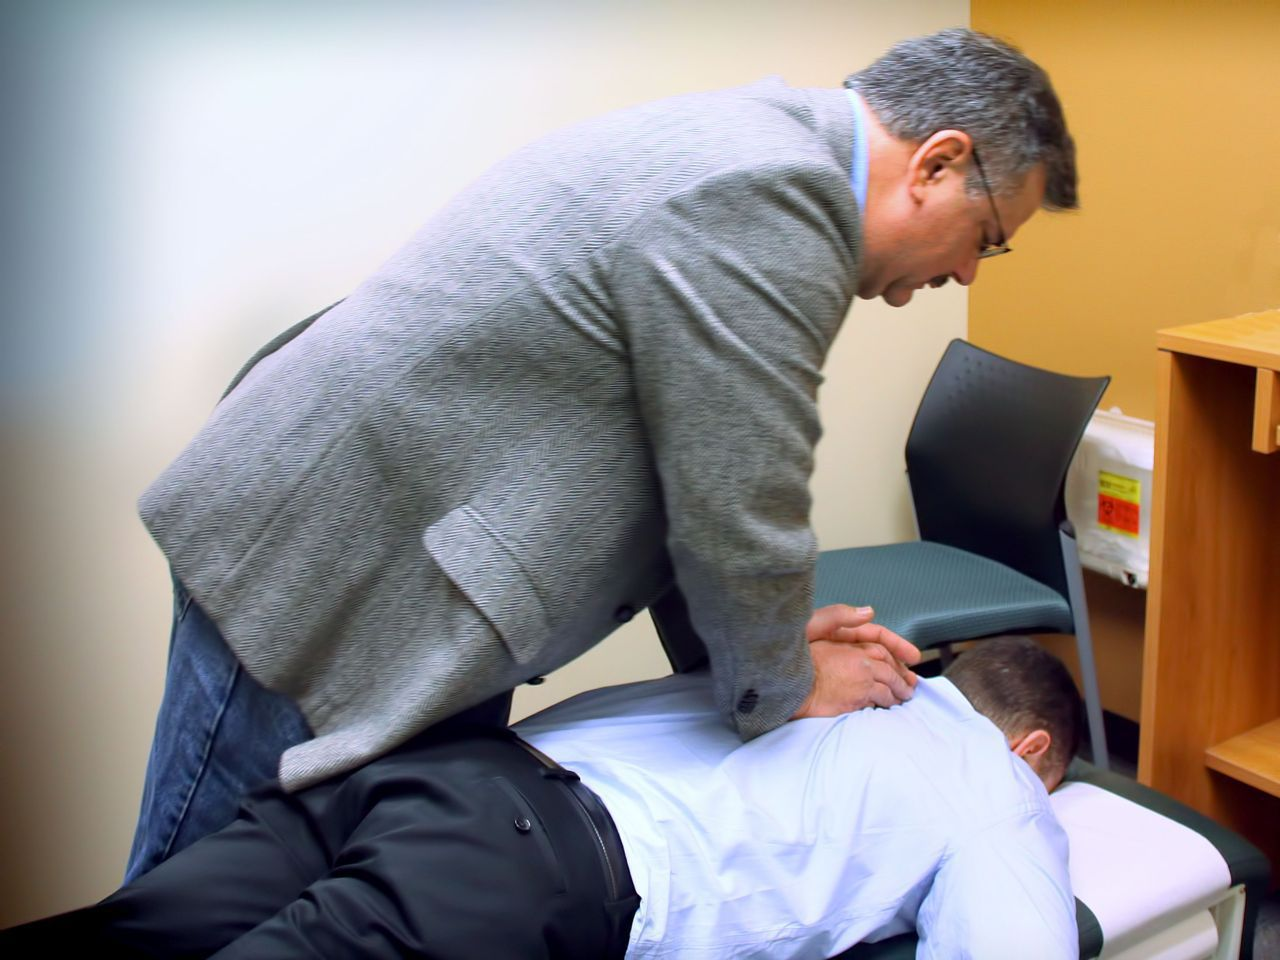 Michigan Chiropractor Malpractice Lawsuits